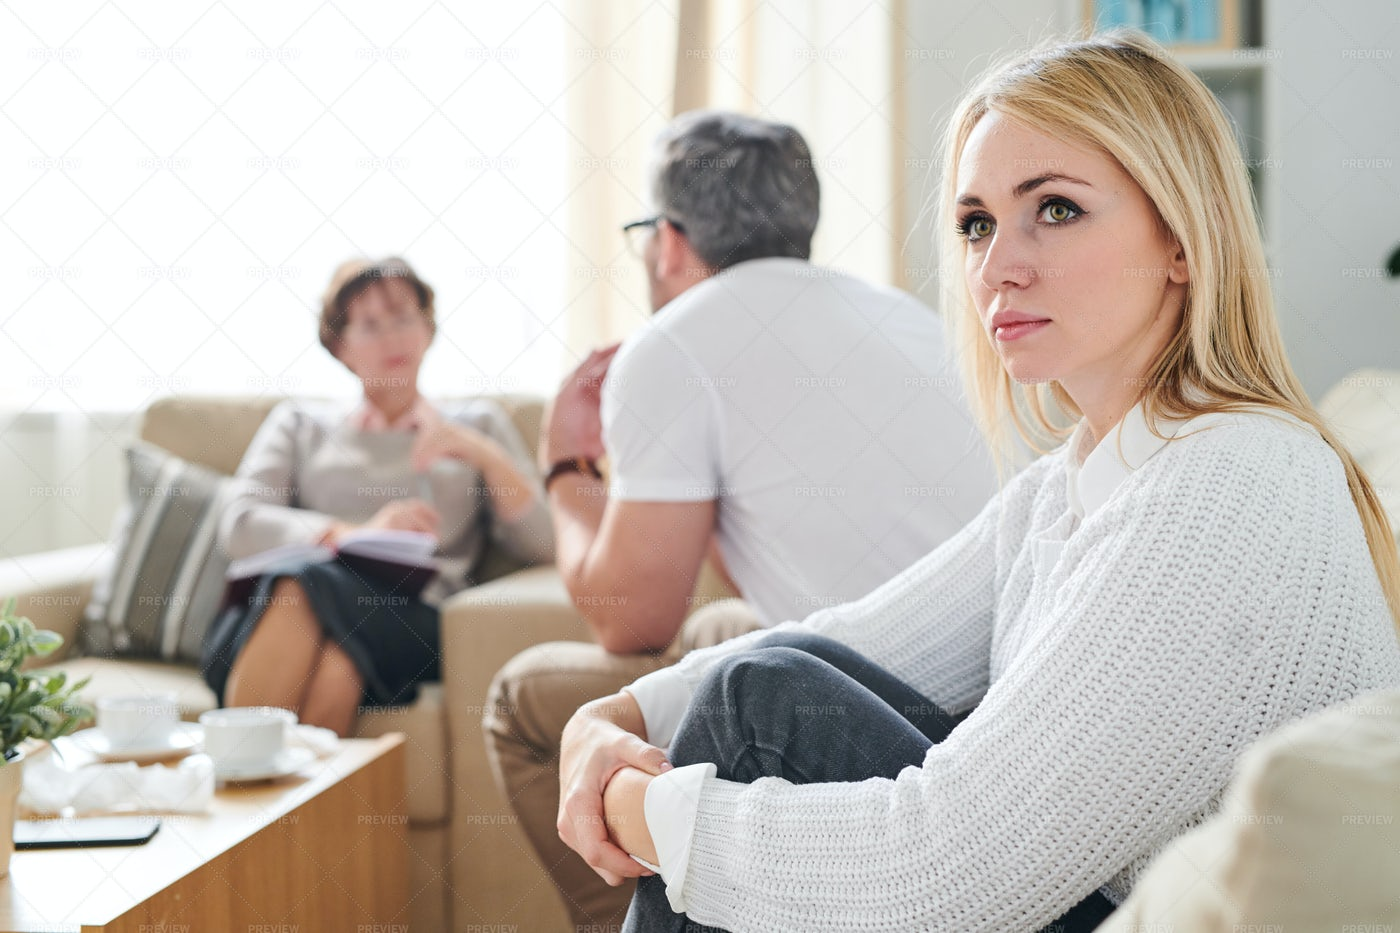 Sad Thoughtful Wife At Therapy...: Stock Photos